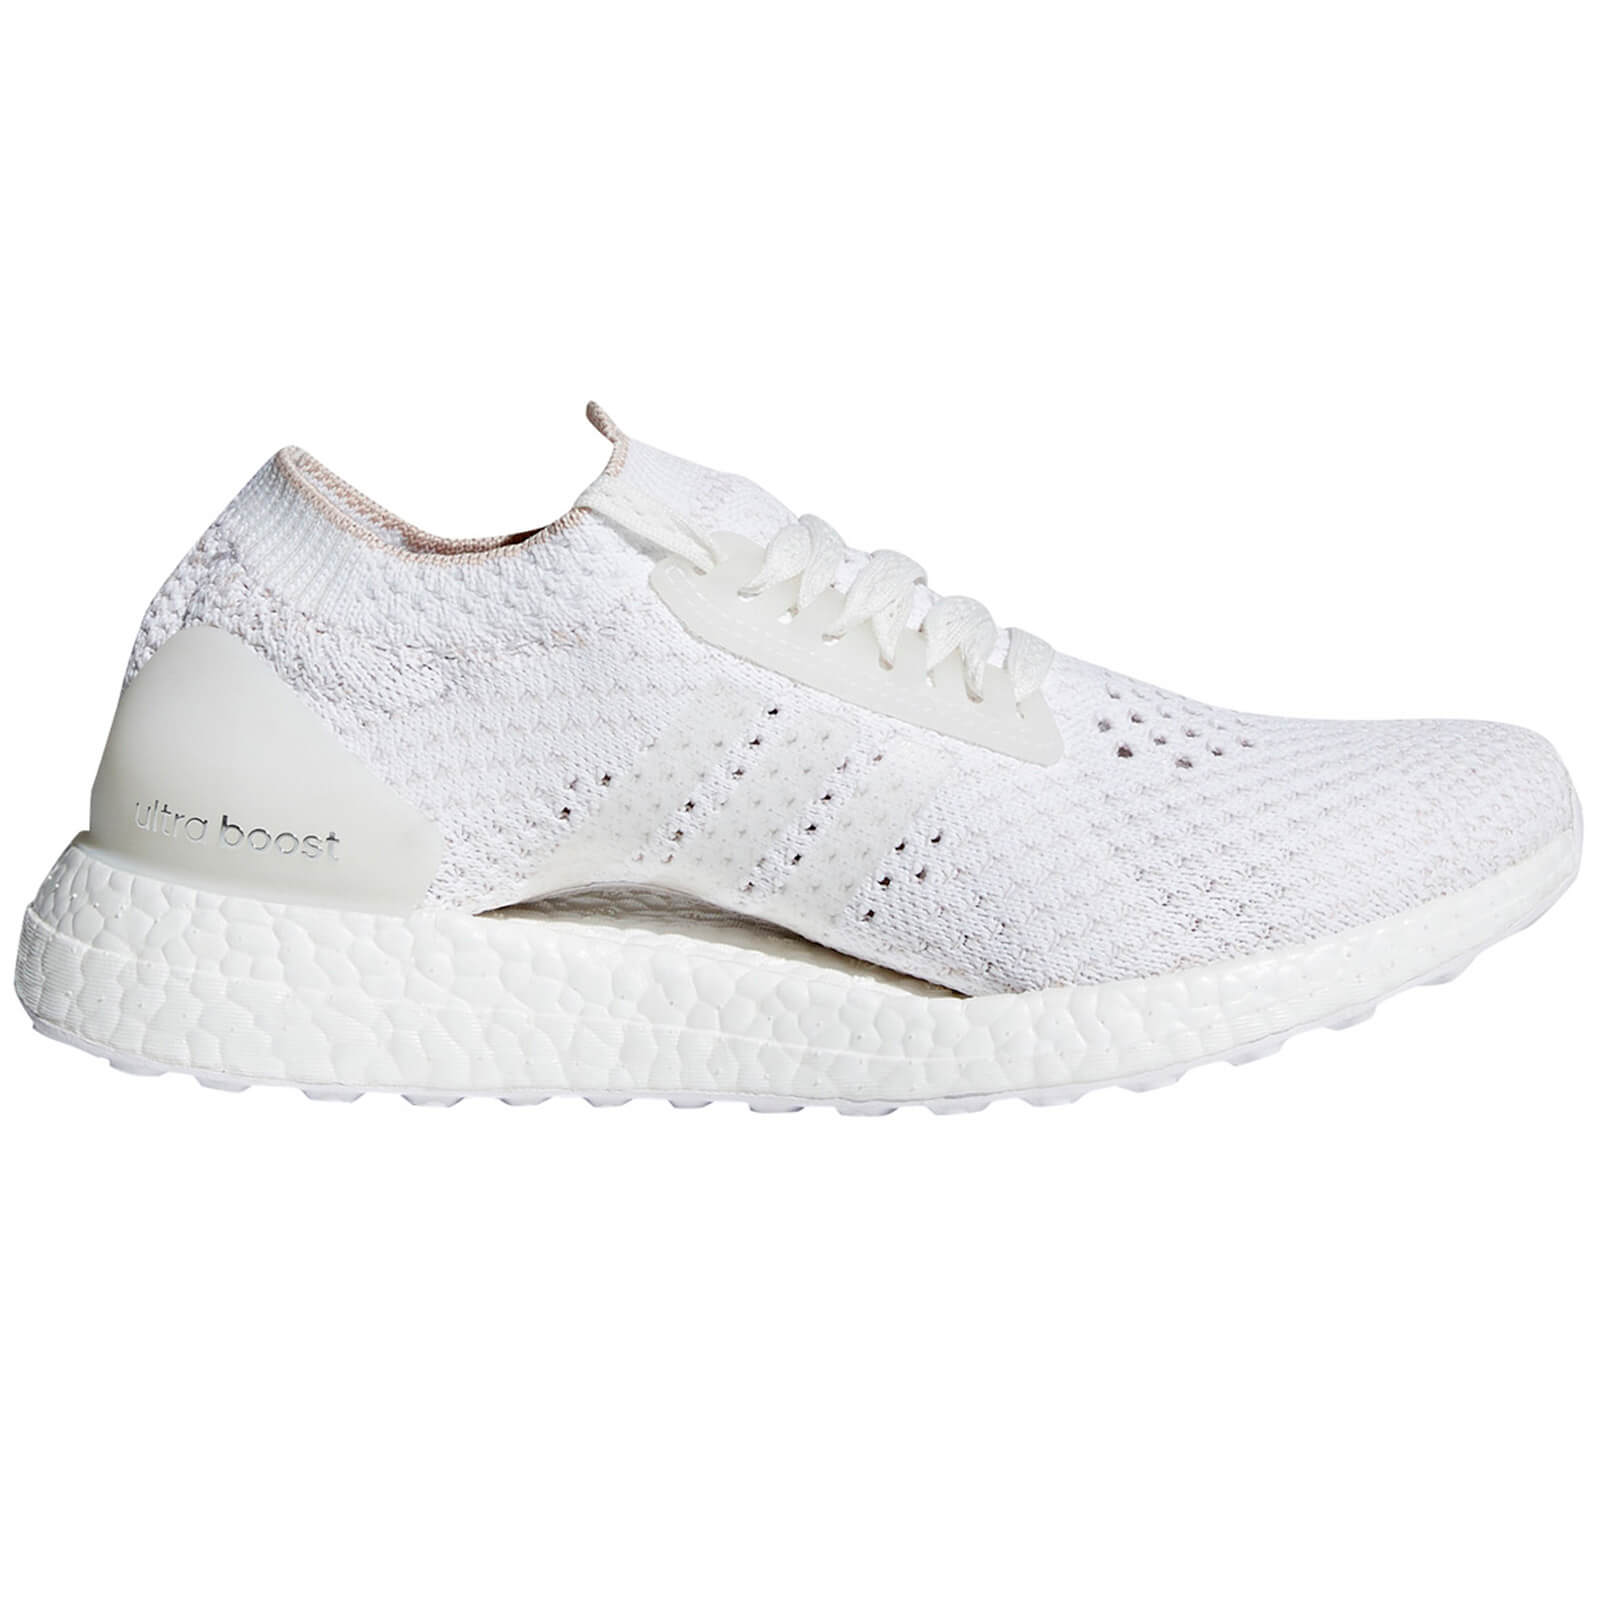 watch a9d20 01e21 adidas Women s Ultraboost X Clima Running Shoes - White   ProBikeKit.com